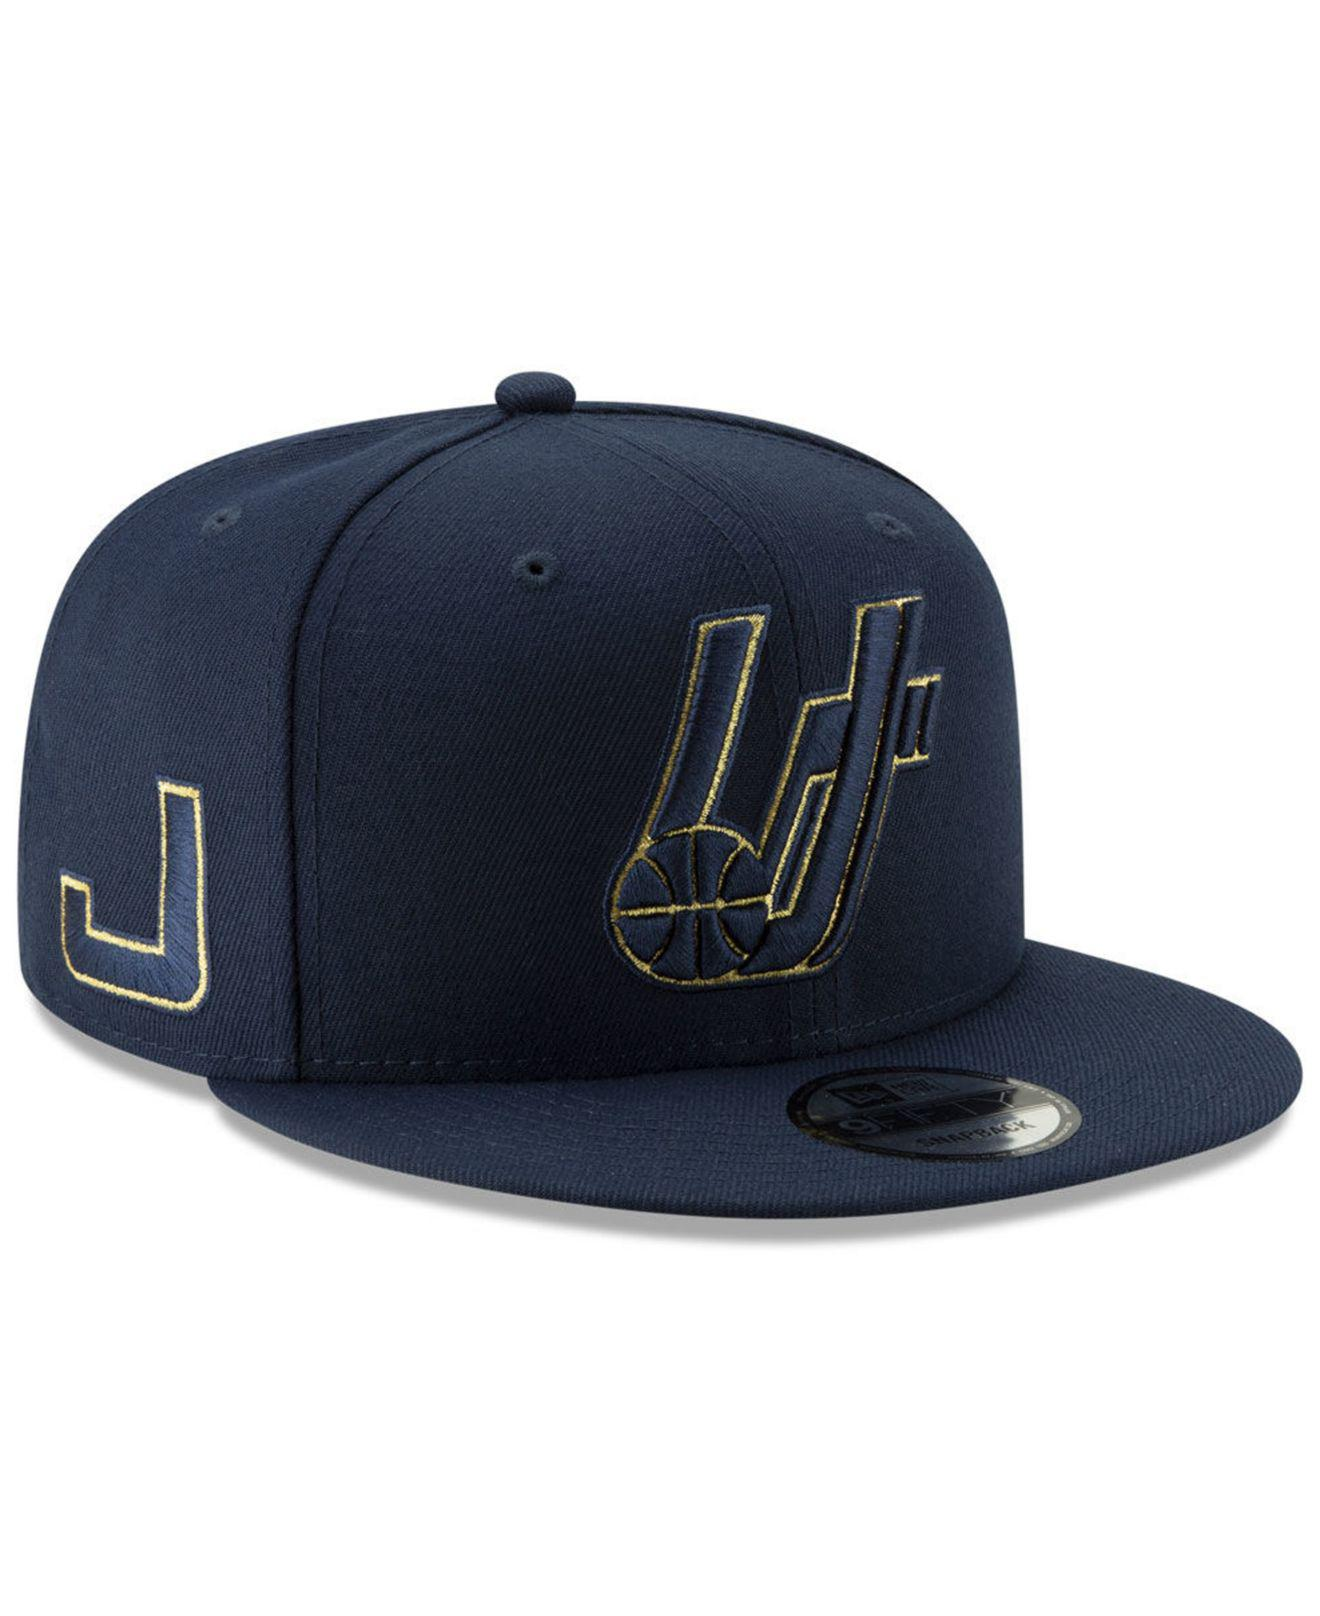 reputable site 9d64a d1ae7 KTZ Utah Jazz Mishmash 9fifty Snapback Cap in Blue for Men - Lyst